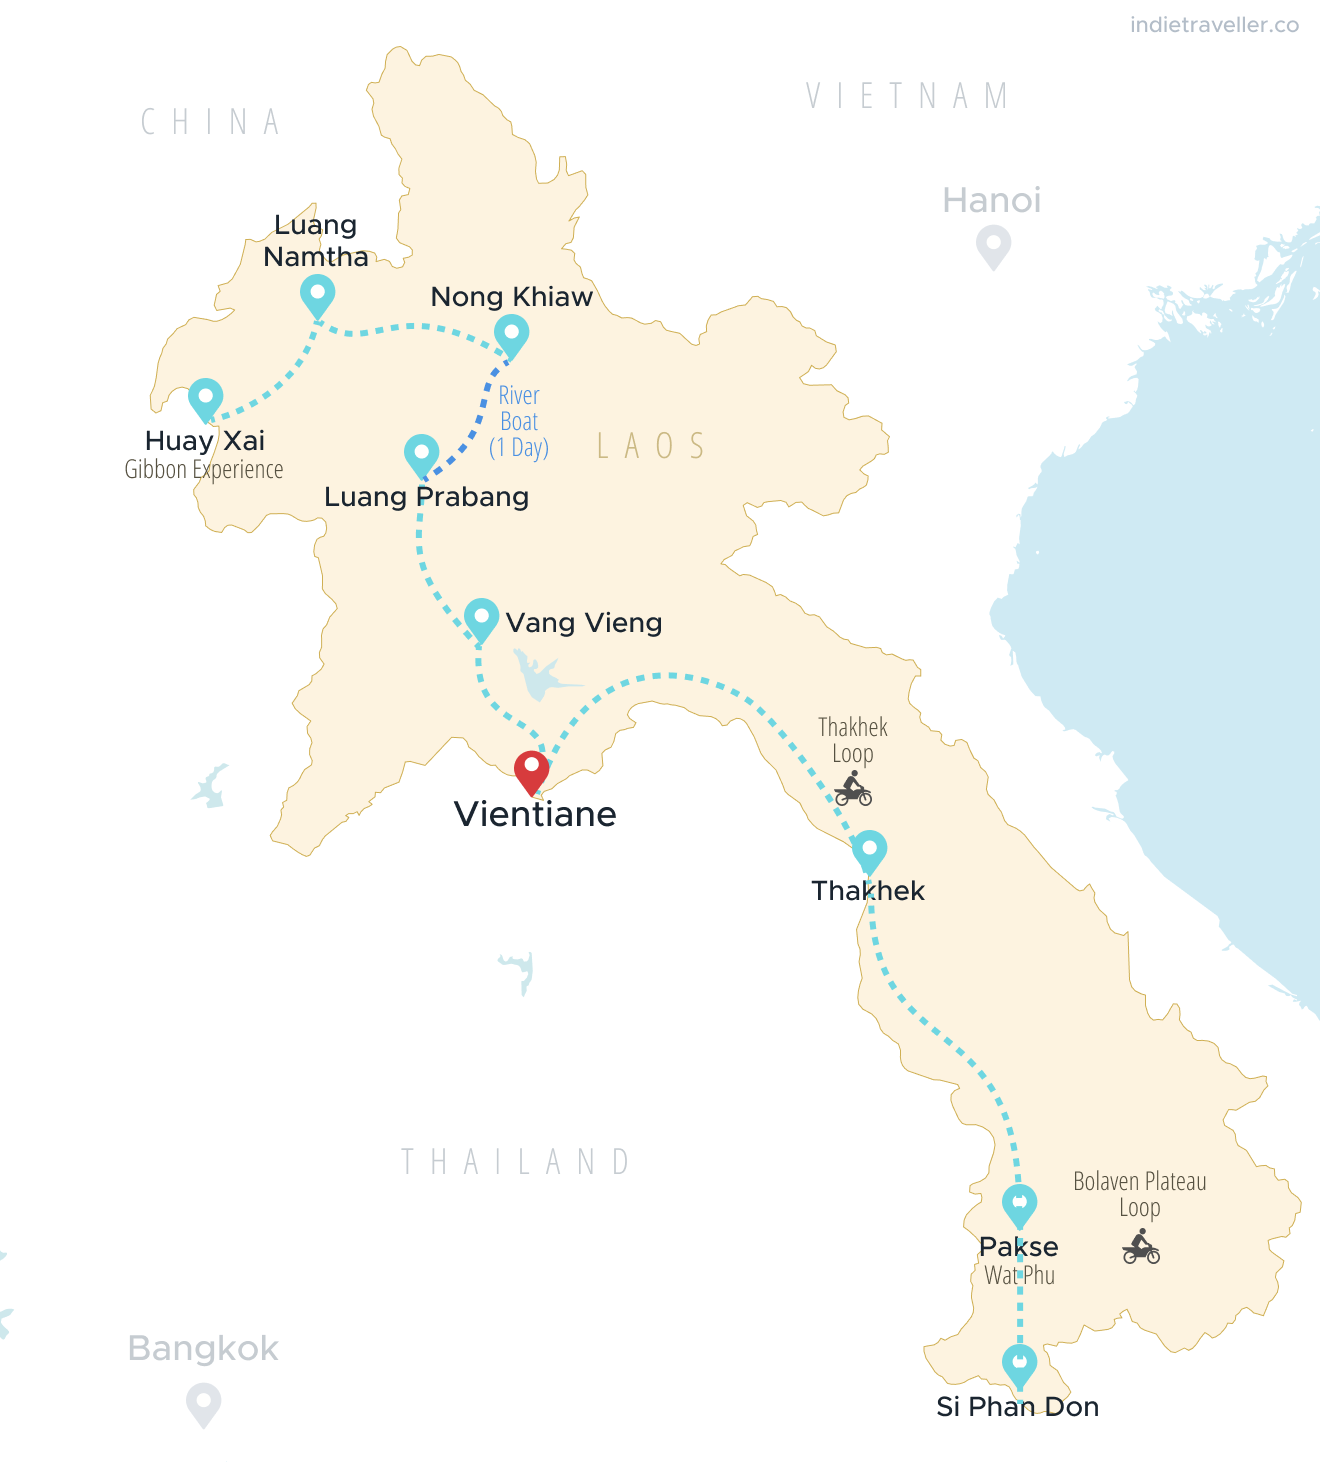 Map of Laos showing a 3 week itinerary, with a route starting in Huay Xai in the north and ending in Si Phan Don in the sotuh.